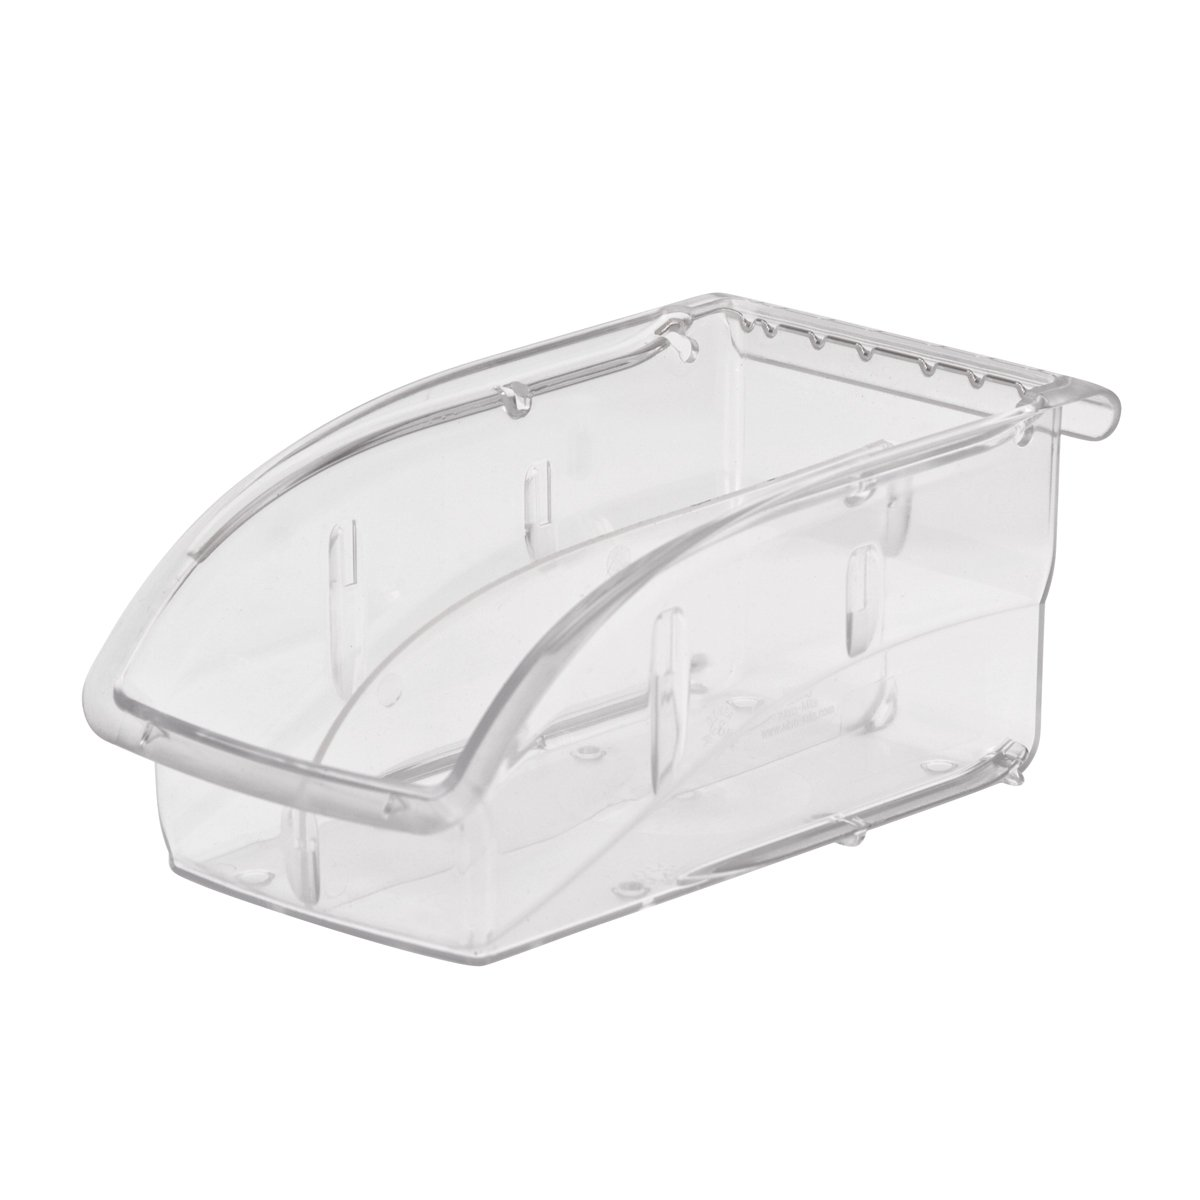 Akro-Mils 305A3 Insight Ultra-Clear Plastic Hanging and Stacking Storage Bin, 7-3/8-Inch Long by 4-1/8-Inch Wide by 3-1/4-Inch Wide, Case of 16